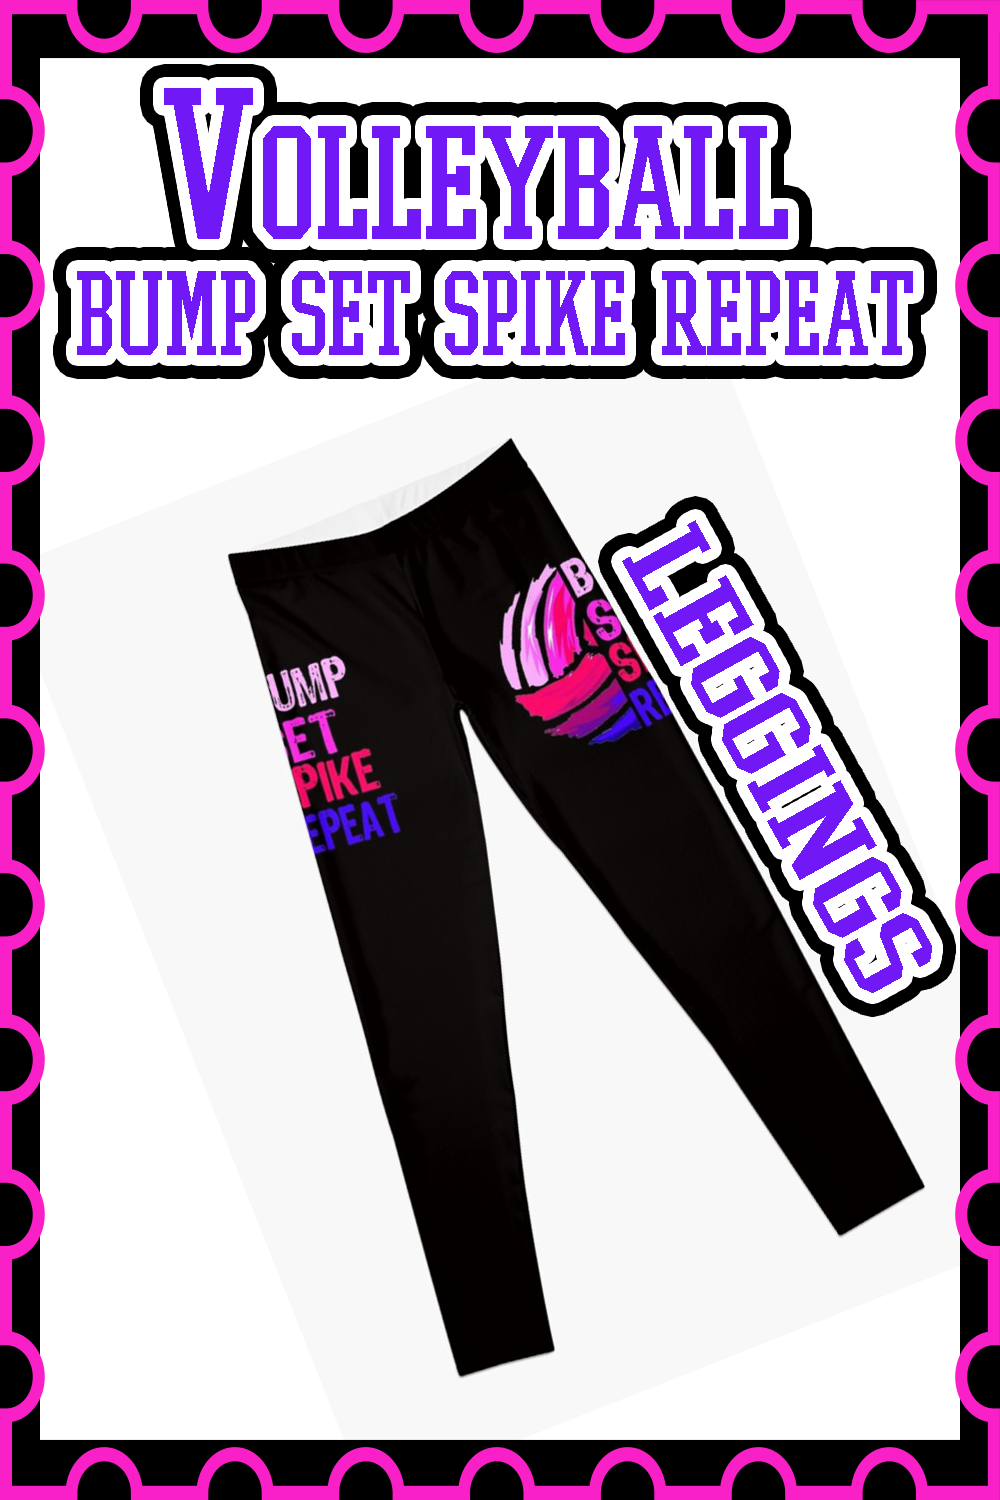 Volleyball Bump Set Spike Pink Leggings By Theboujeebunny In 2020 Volleyball Leggings Volleyball Outfits Volleyball